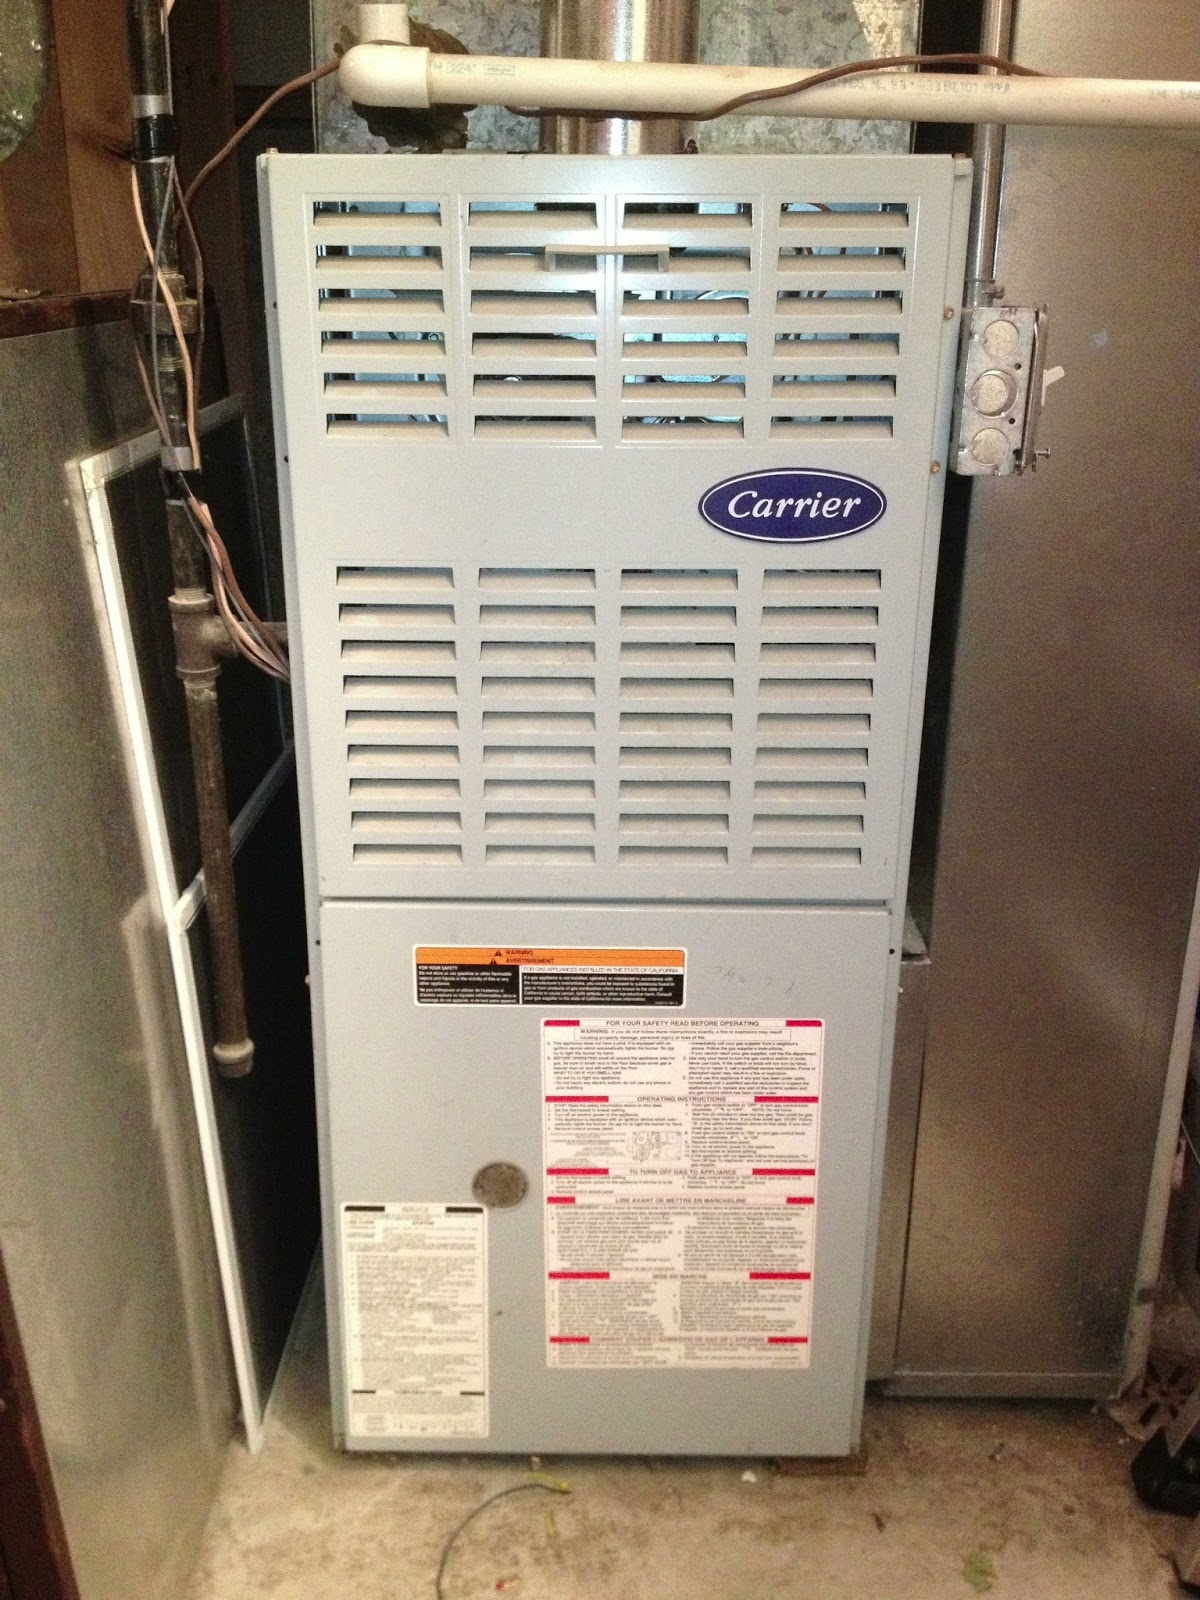 Singer Heat Pump Wiring Diagram Starting Know About Carrier Furnace Thermostat Free